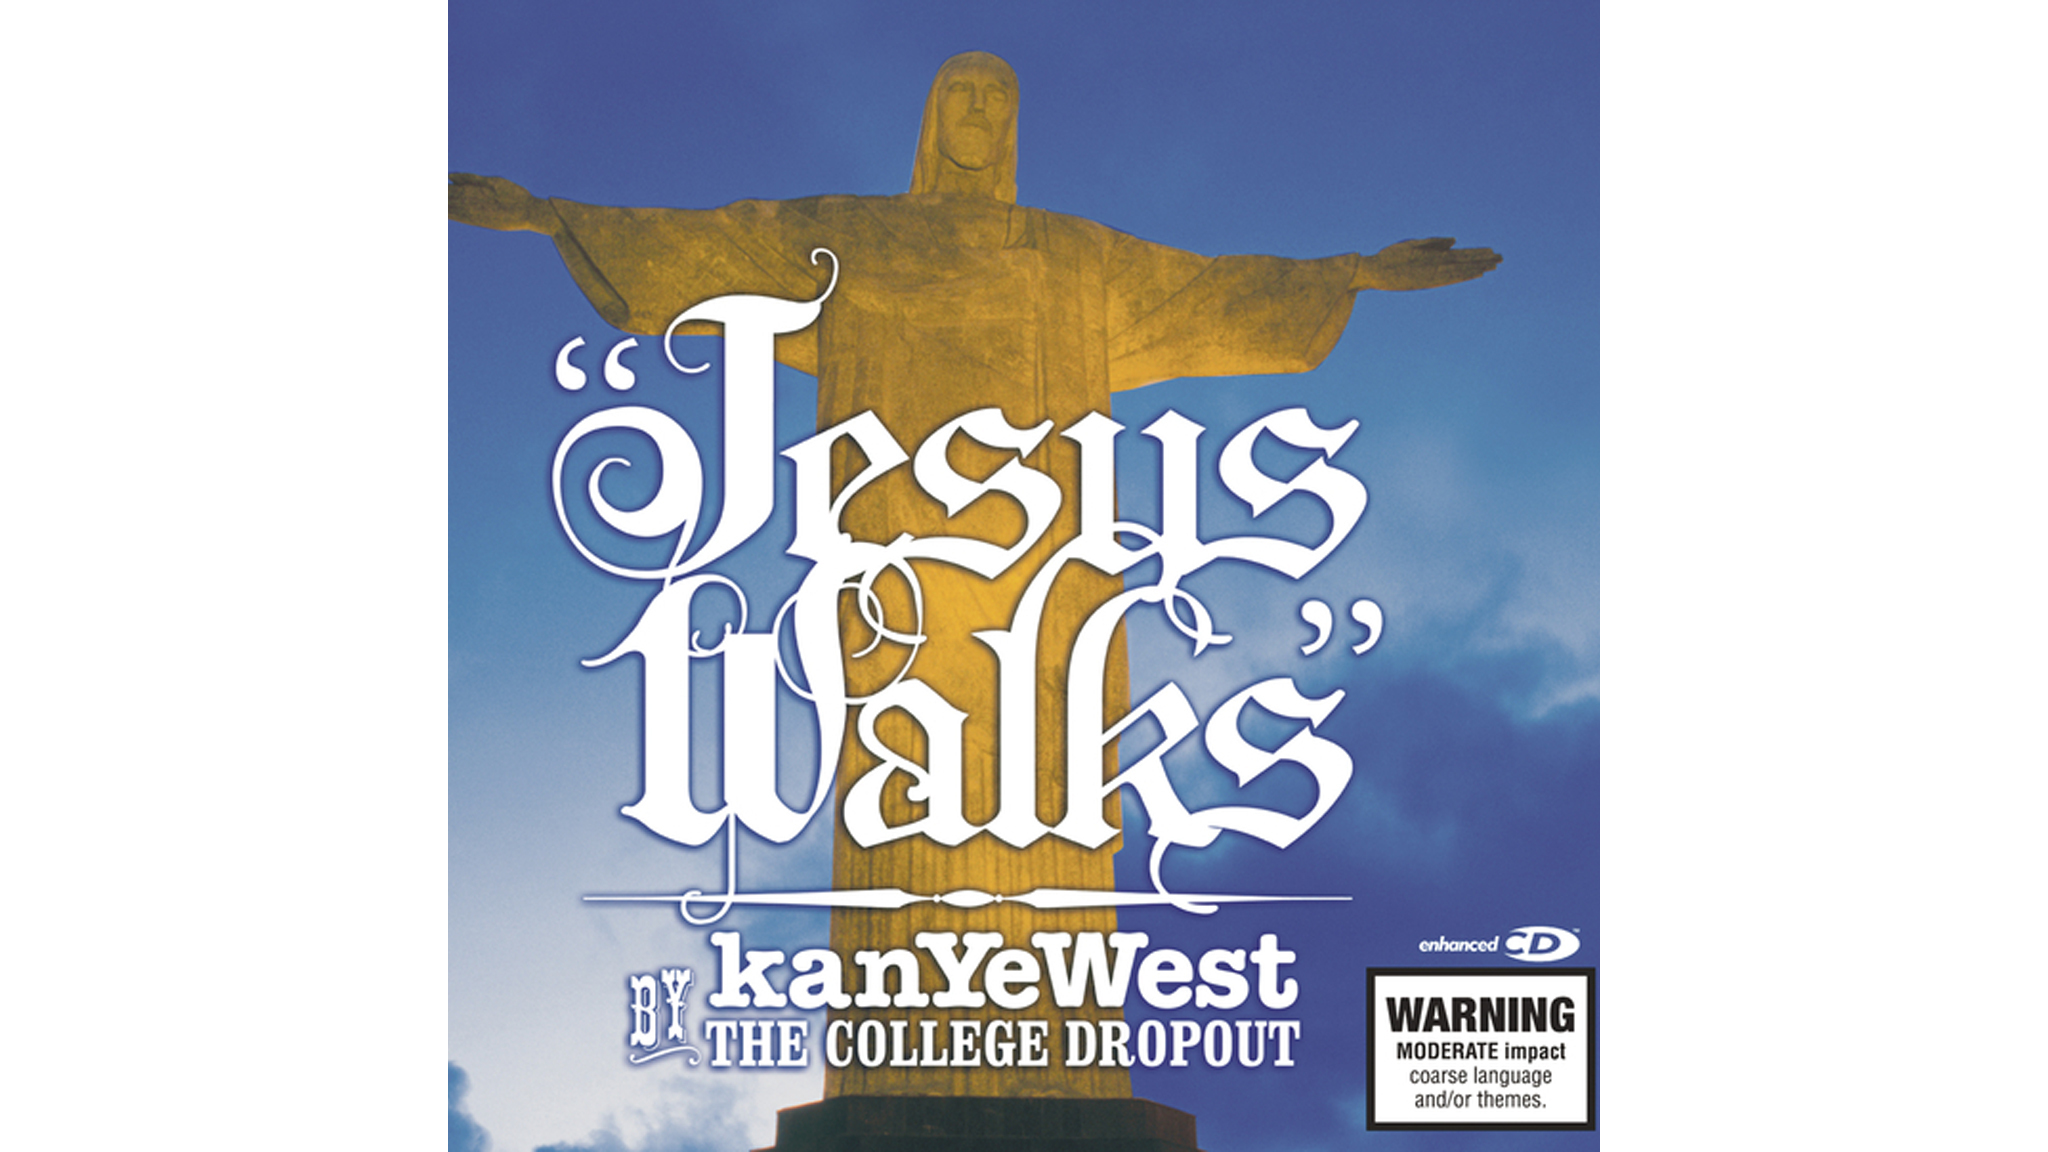 Kanye West – Jesus-Walks